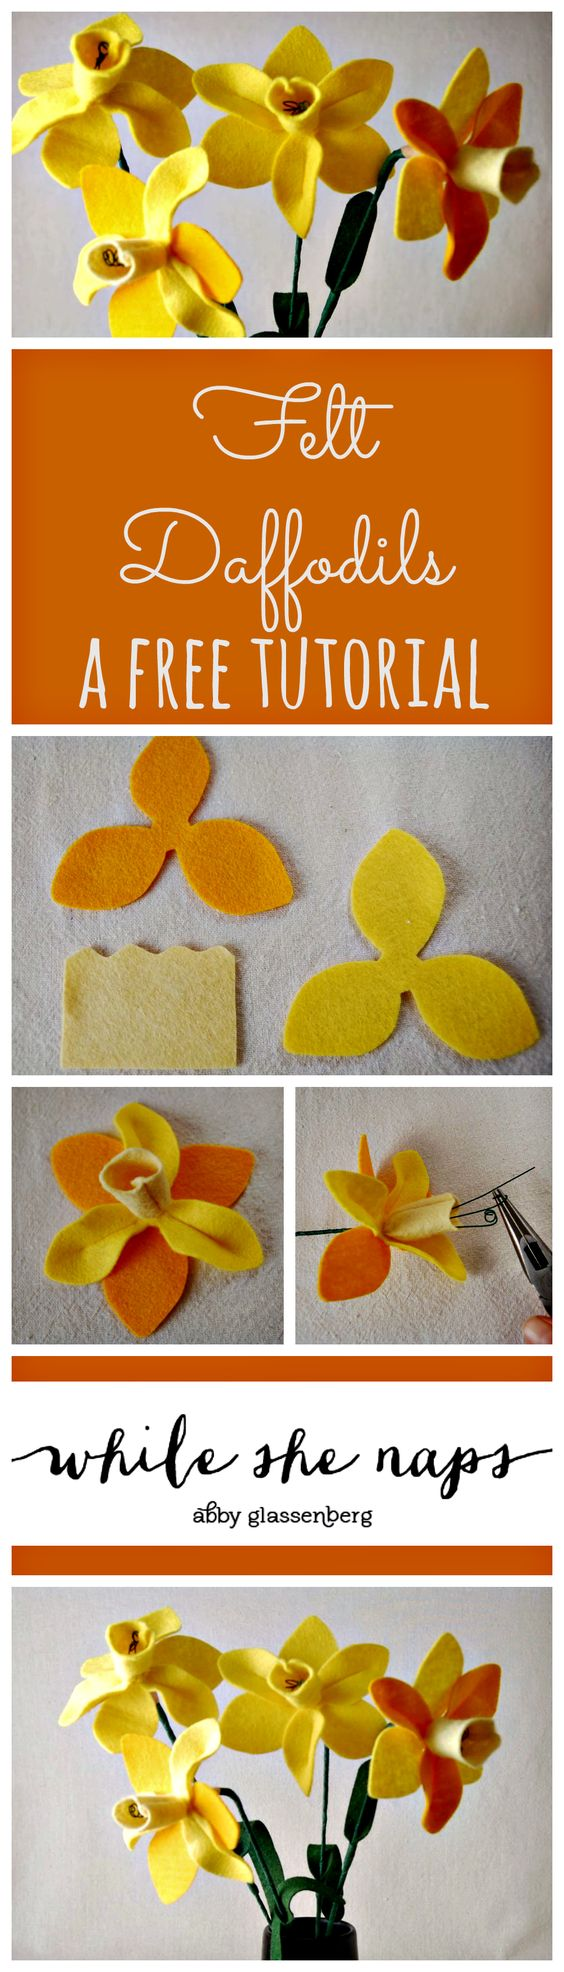 A free pattern for felt Daffodils: